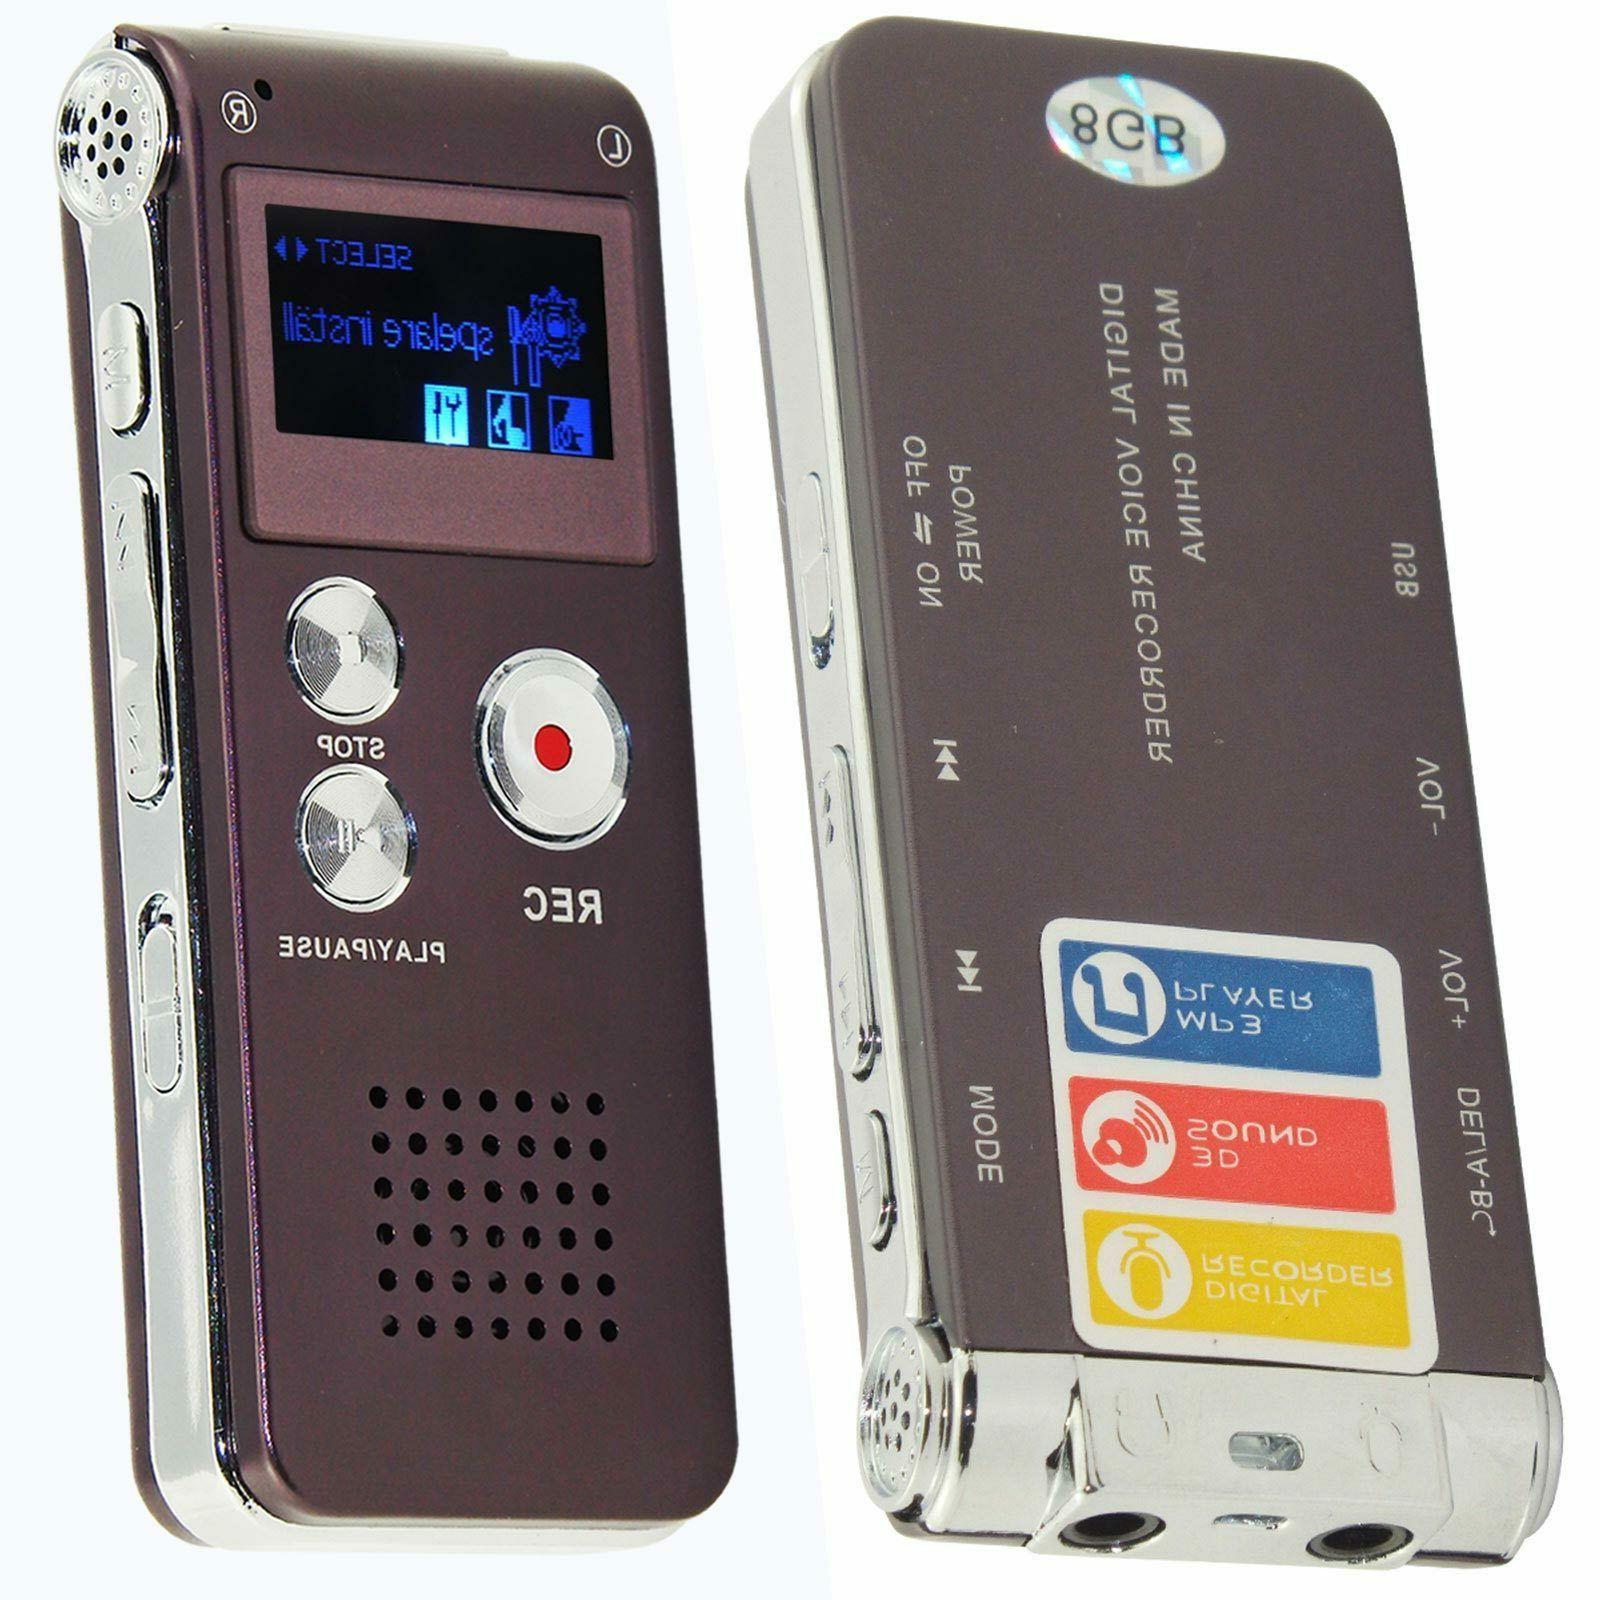 8GB Sound Voice Recorder Dictaphone MP3